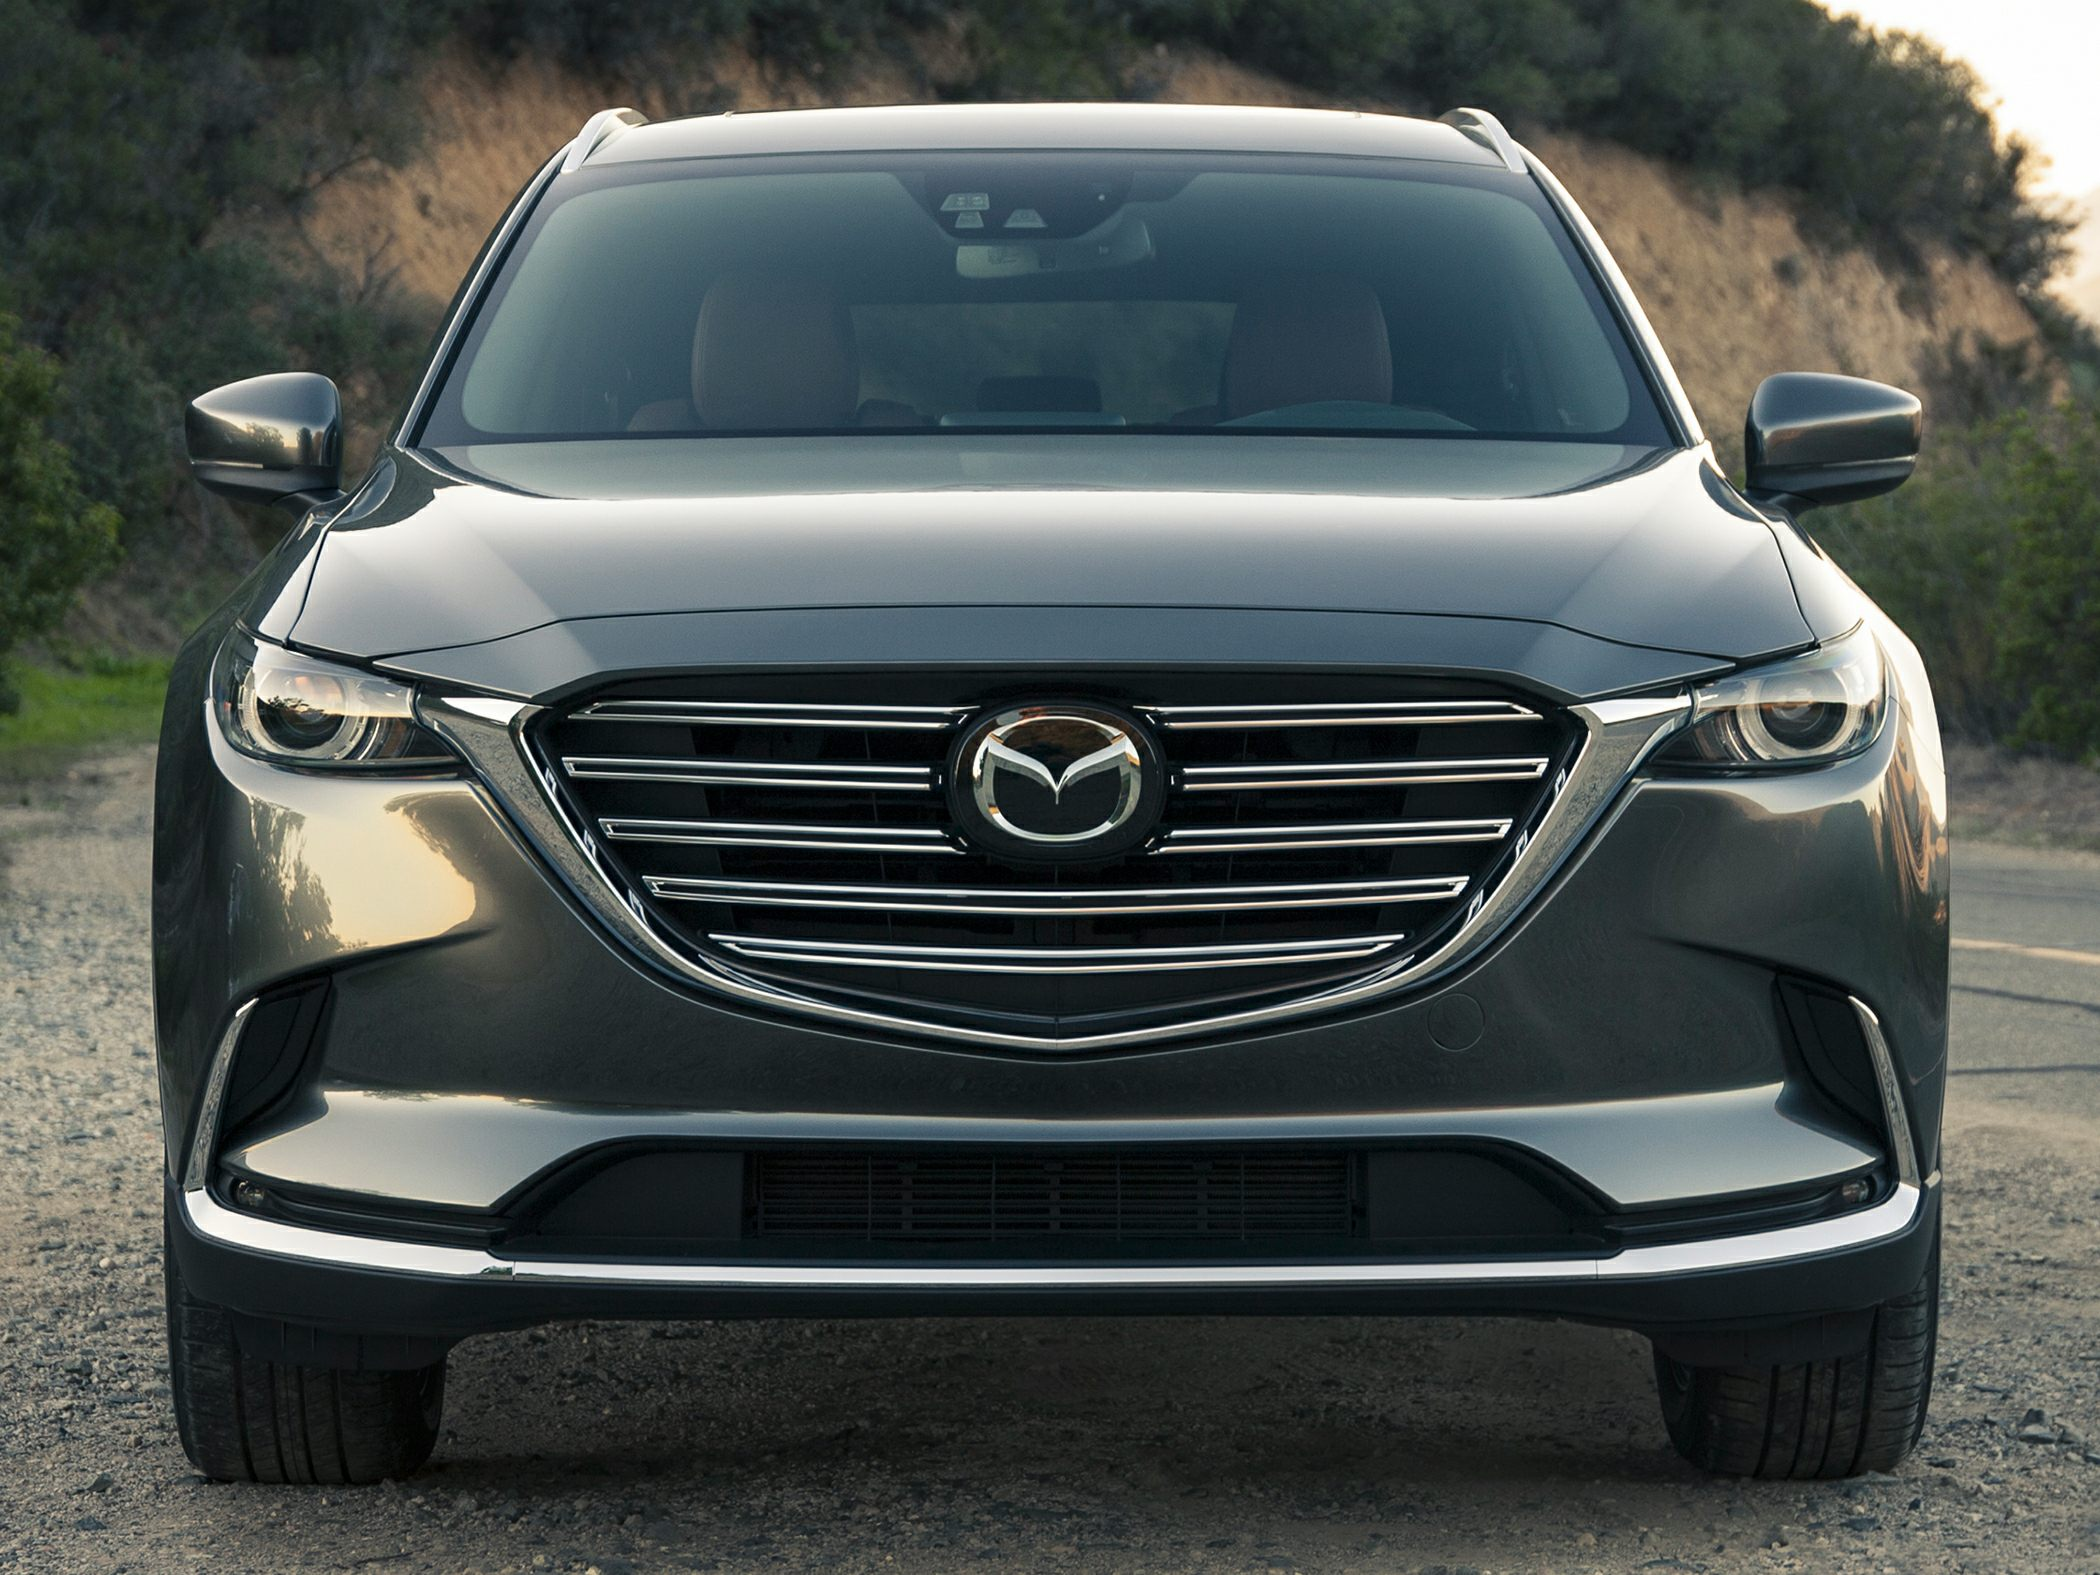 mazda awd reviews driving suv road used signature test cx review